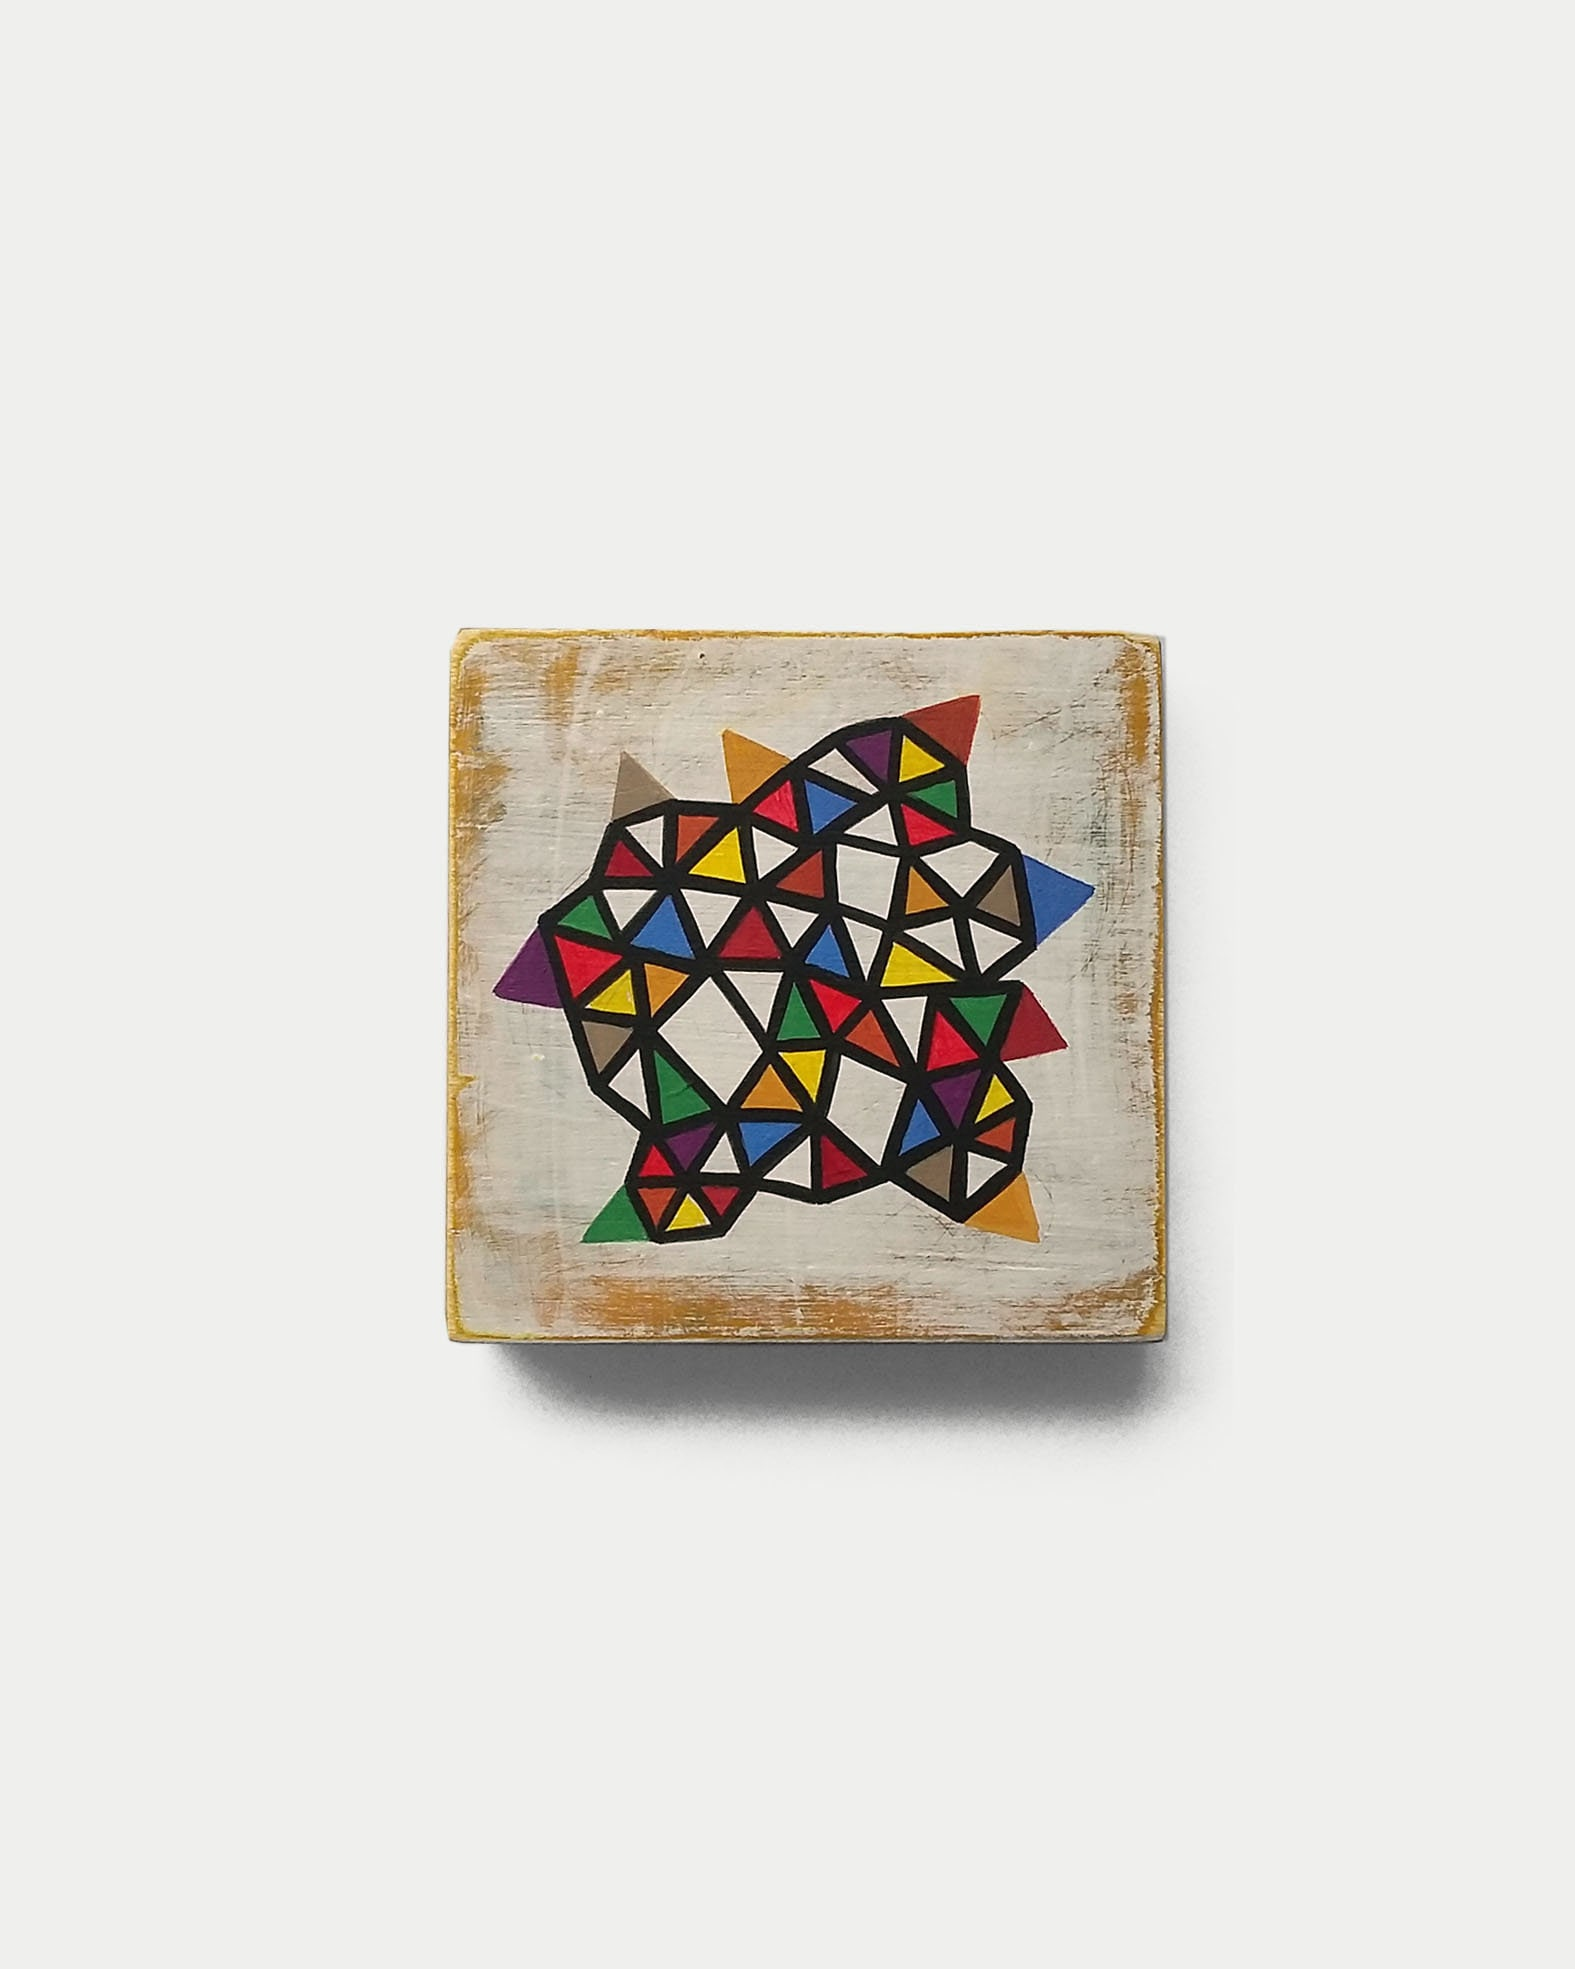 Slice_001, contemporary geometric art painting - product images  of